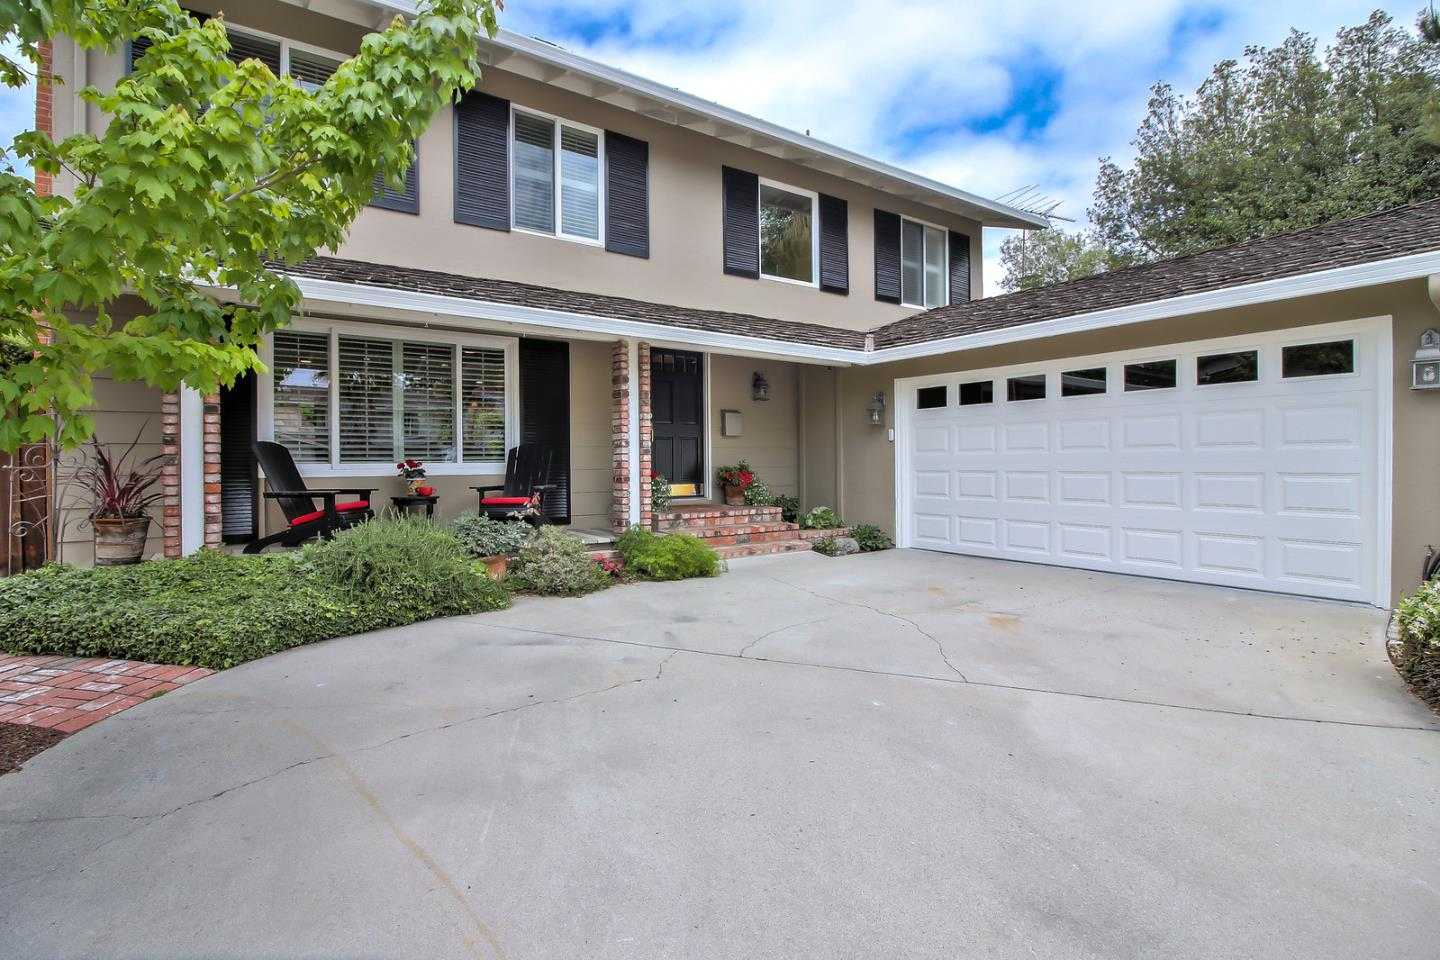 $2,198,000 - 4Br/3Ba -  for Sale in Sunnyvale